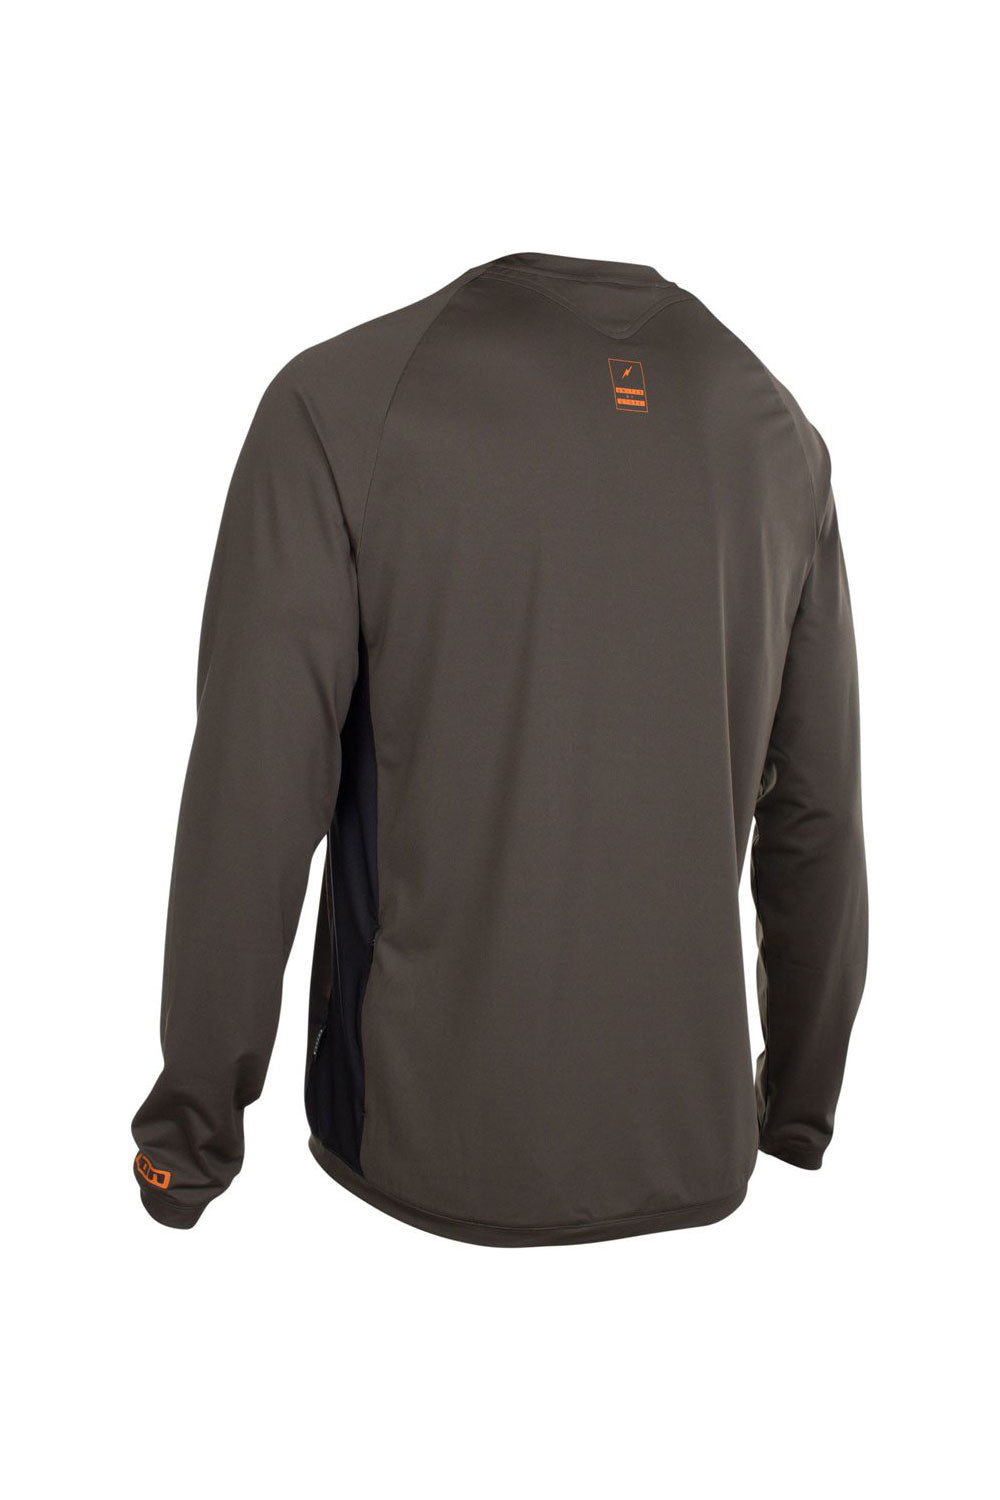 ION 2020 Long Sleeve Traze Amp MTB Bike Jersey